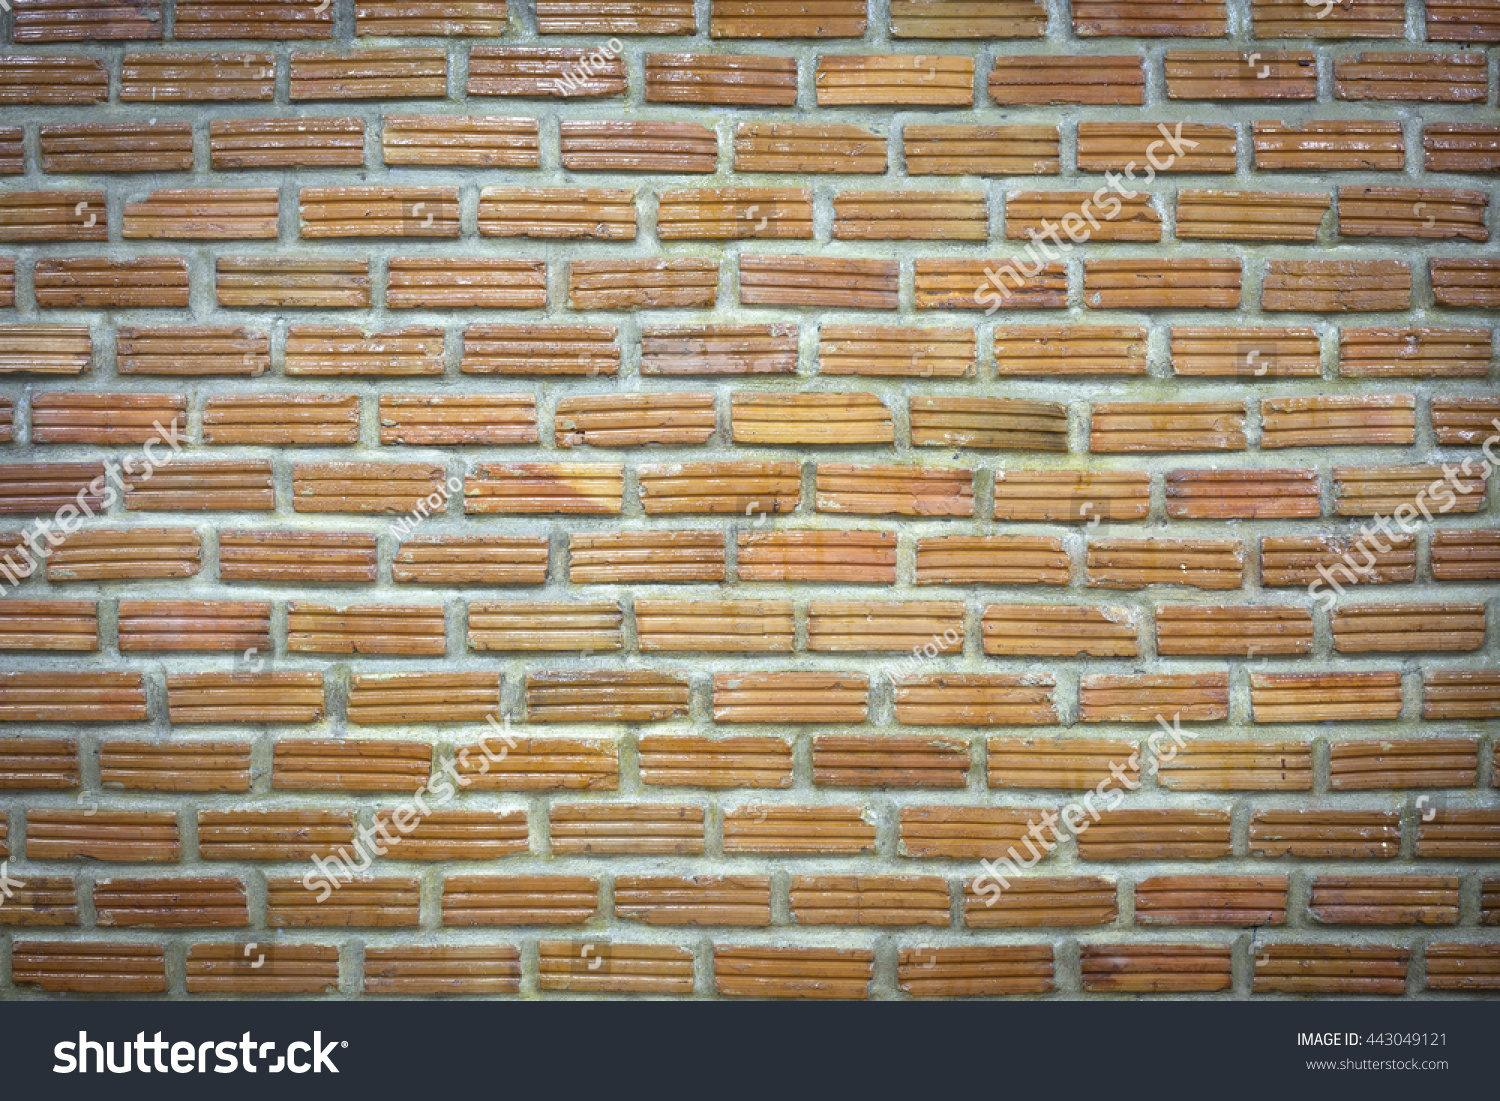 Background Old Vintage Brick Wall Oily Stock Photo (Edit Now) 443049121